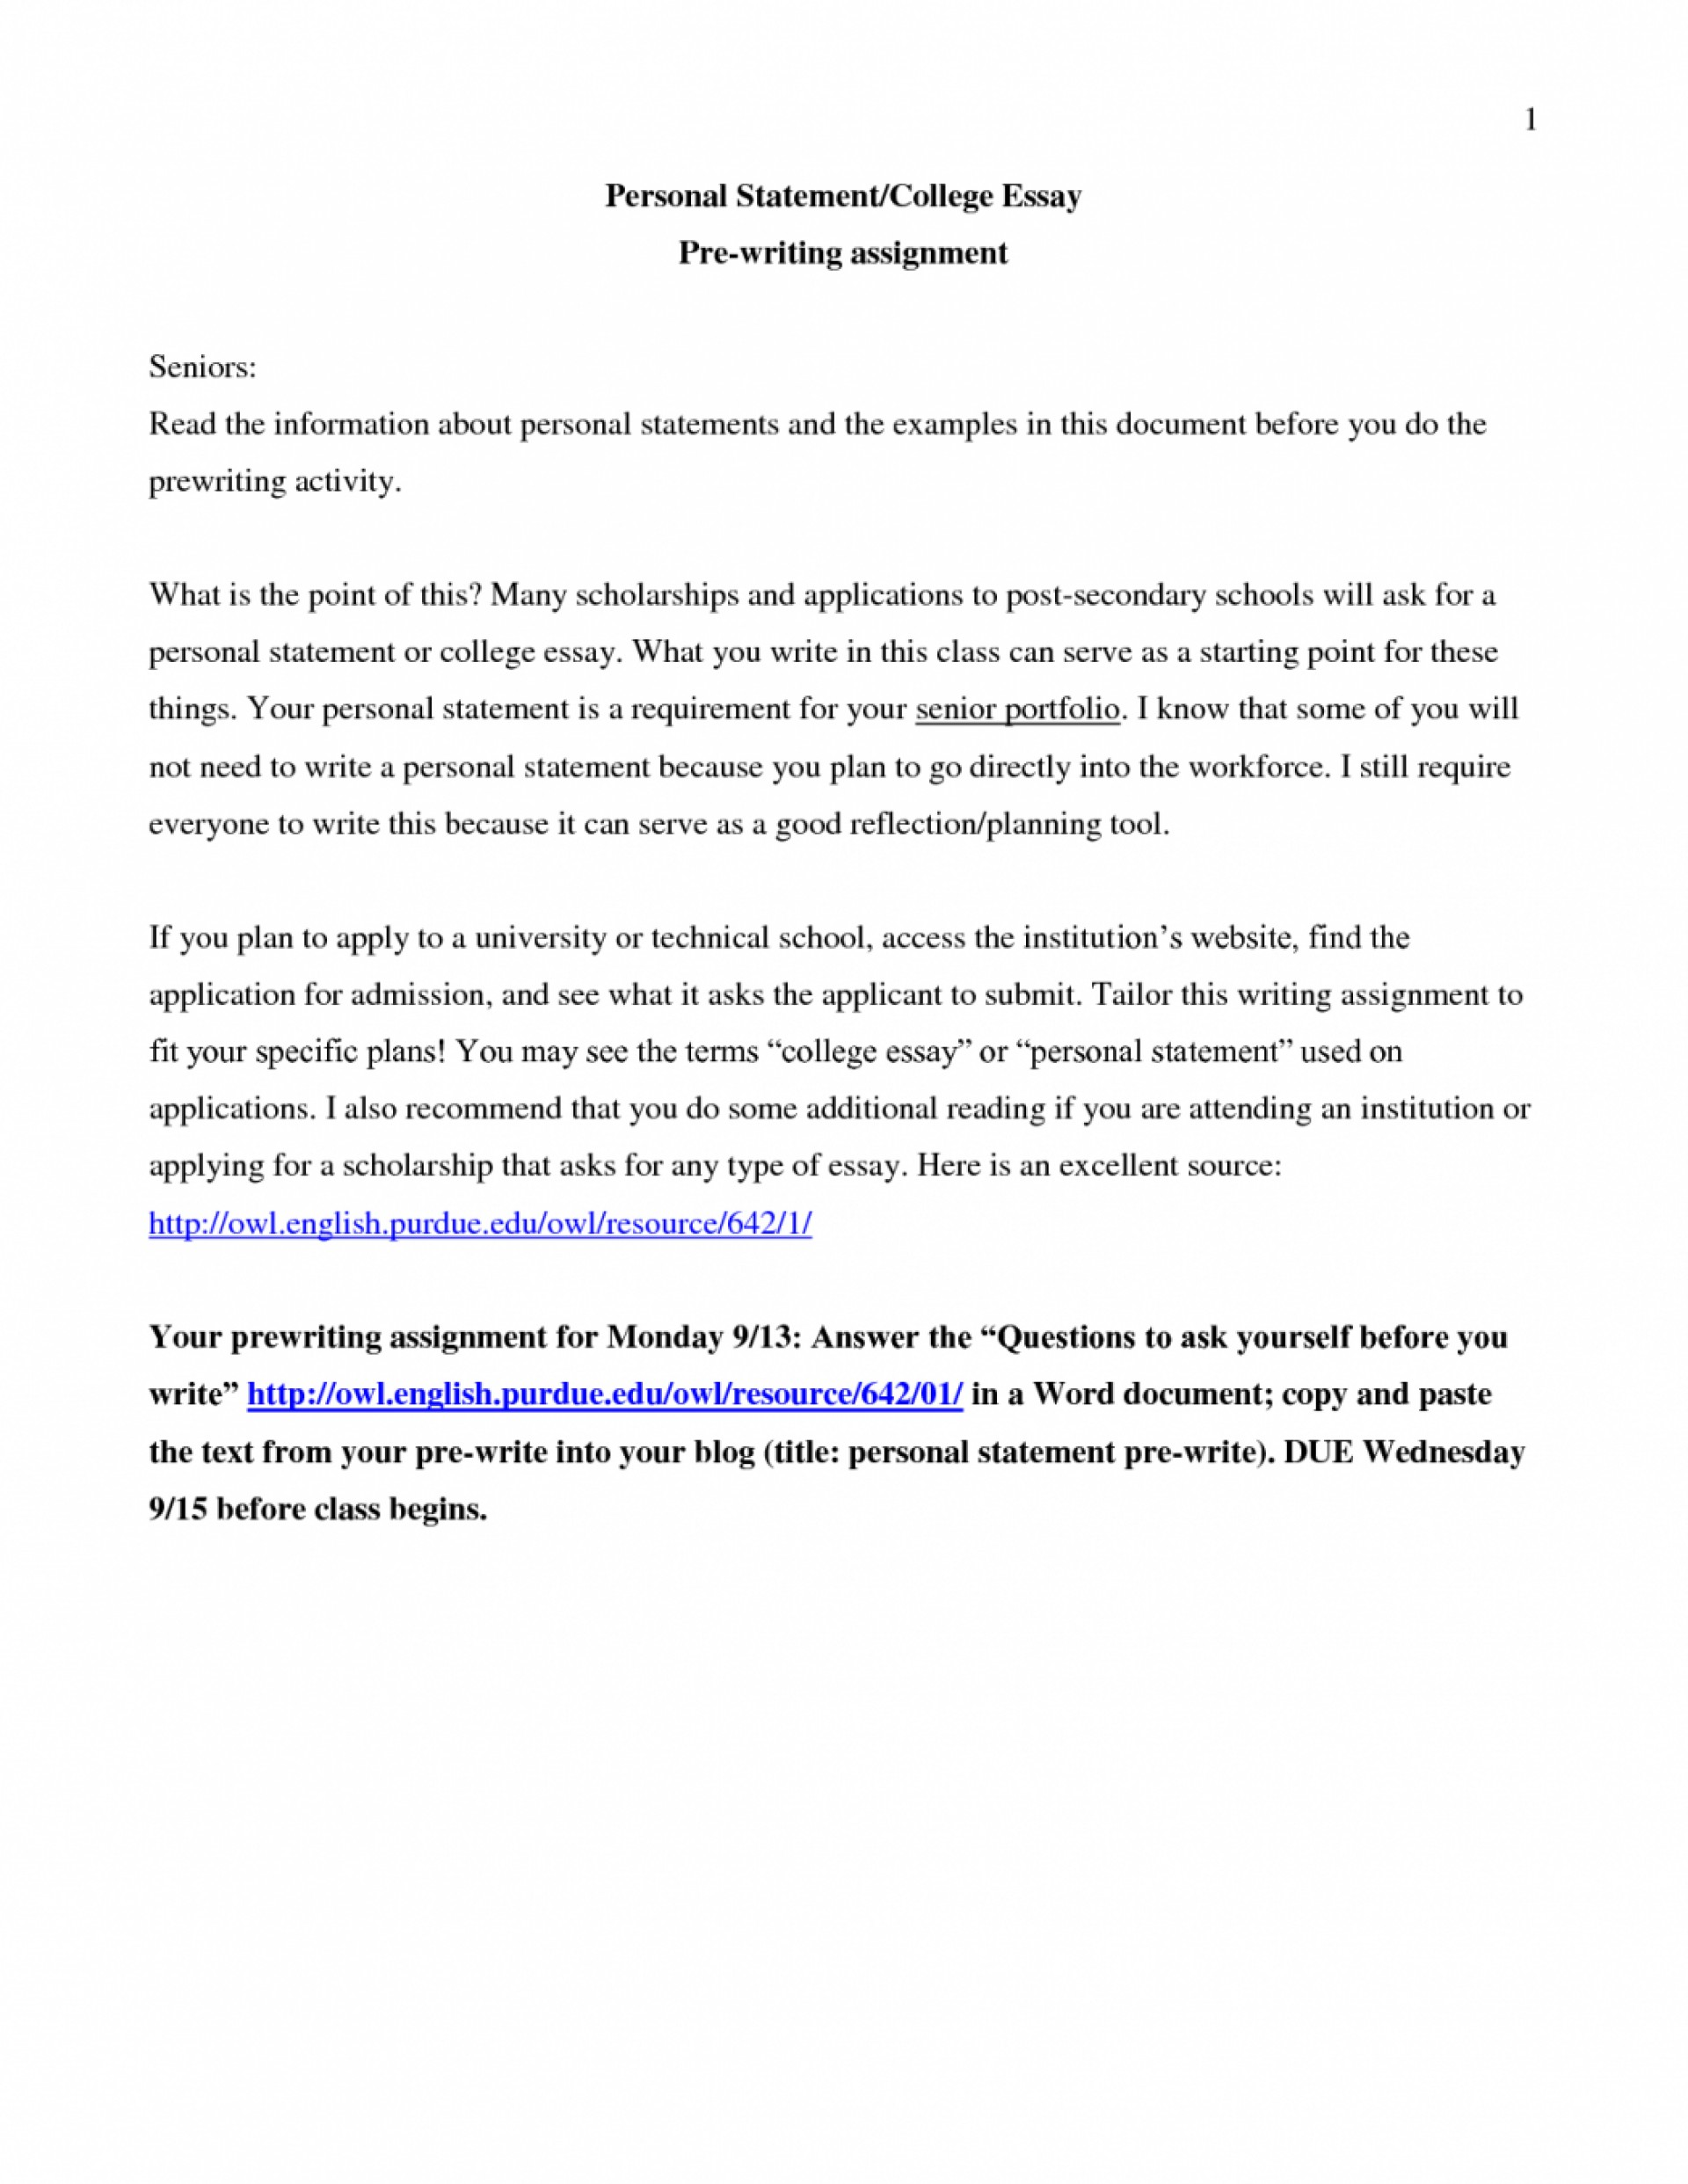 011 Expository Essay Samples For College Fake Generator Sample T2u0n Outline Title Free Idea 1048x1356 Amazing 1920